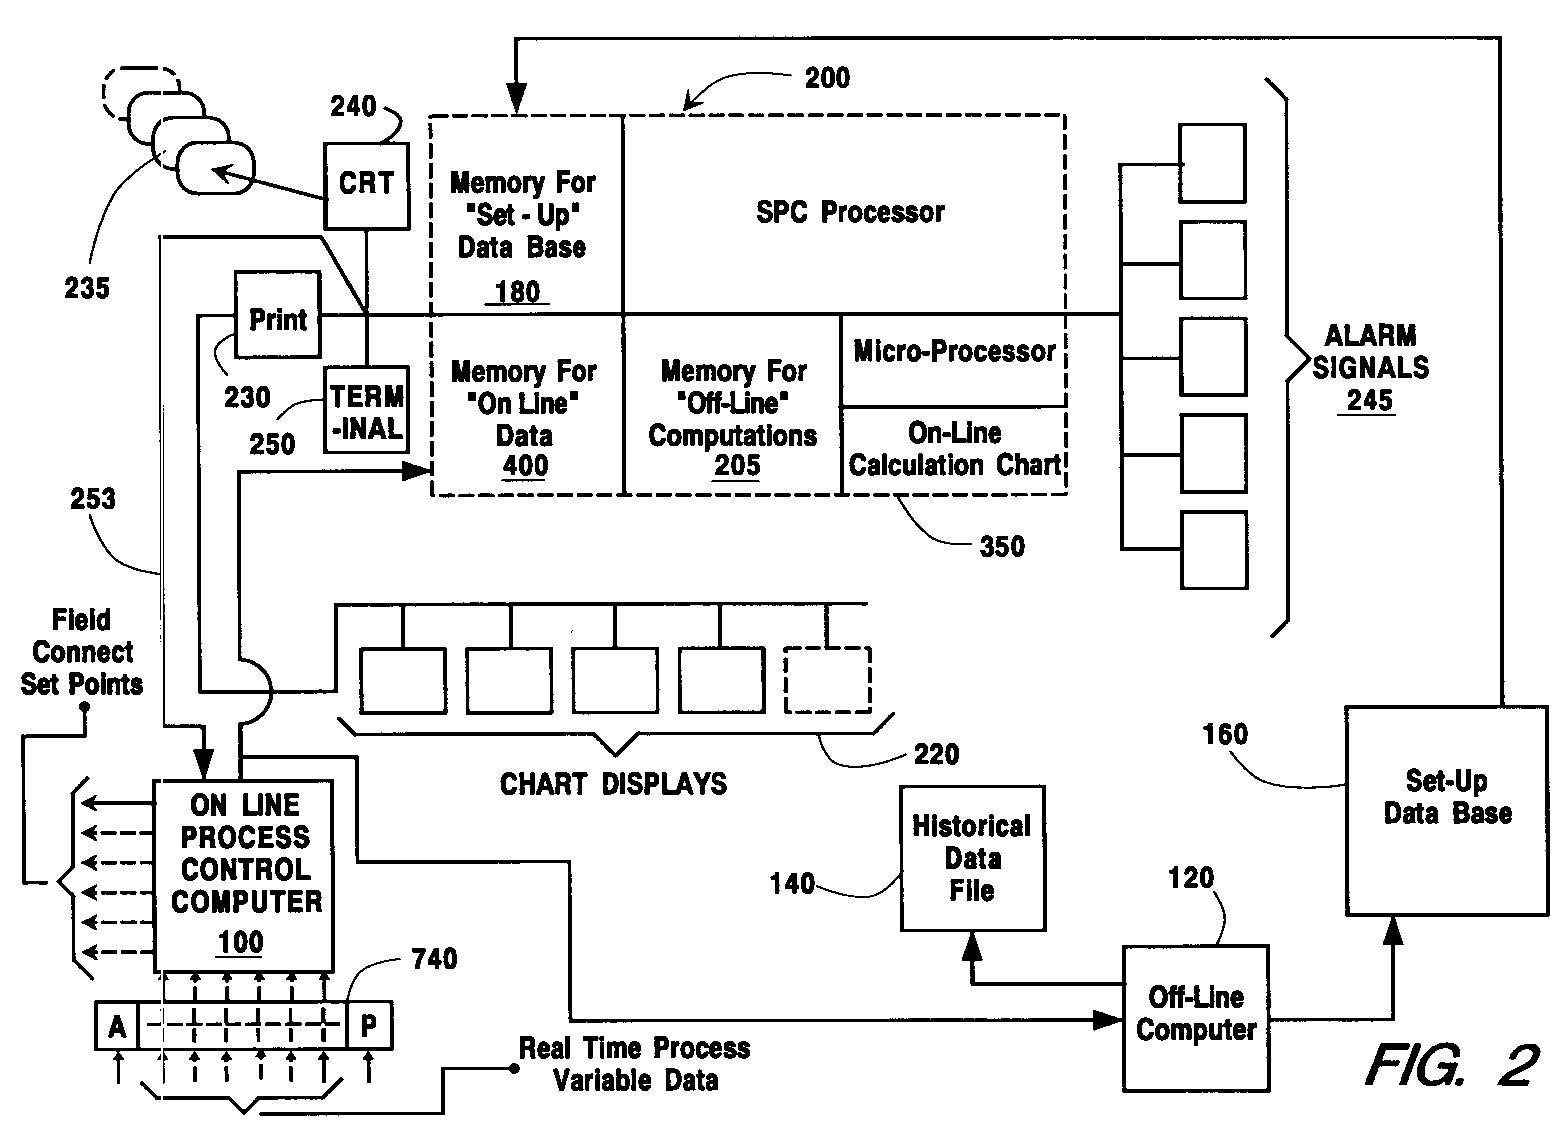 Statistical process control system for an air-separation plant using